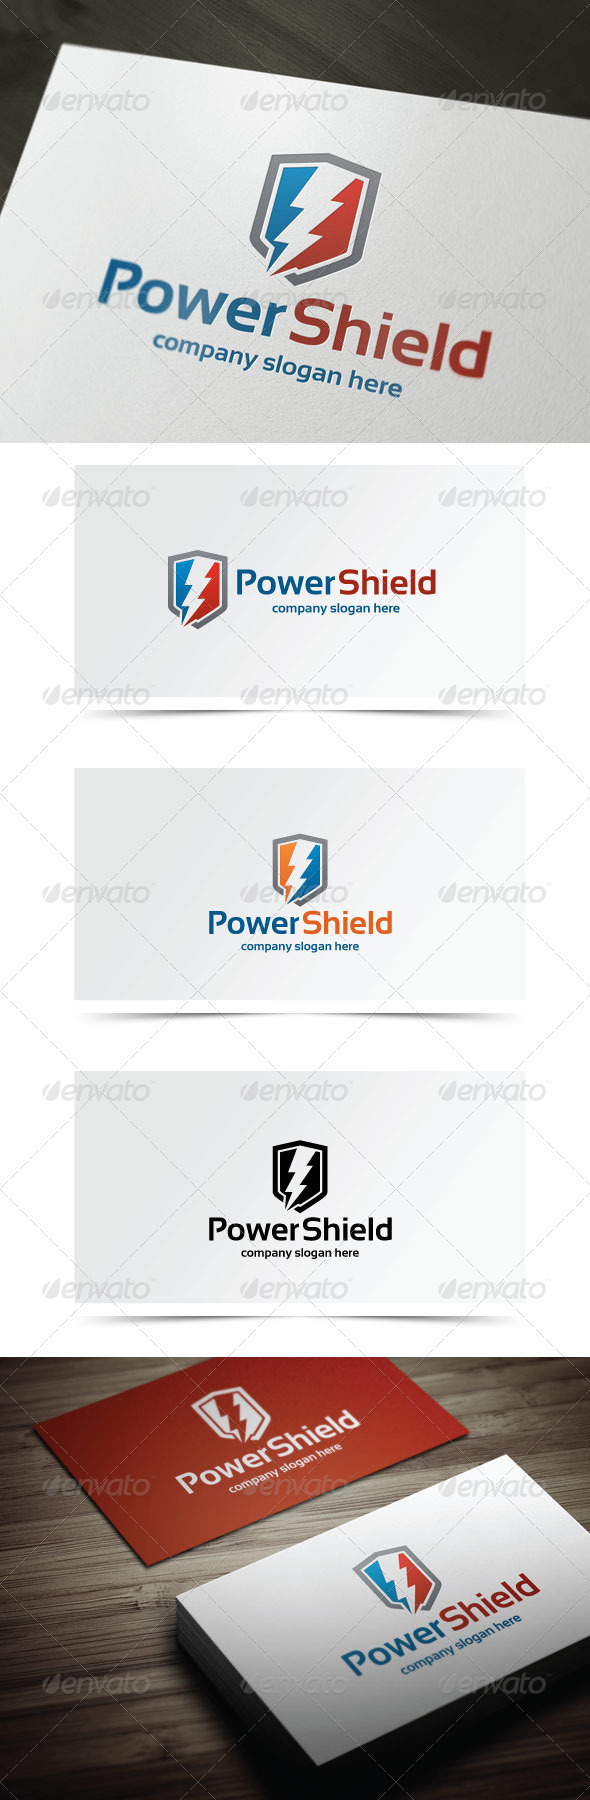 GraphicRiver Power Shield 5803668